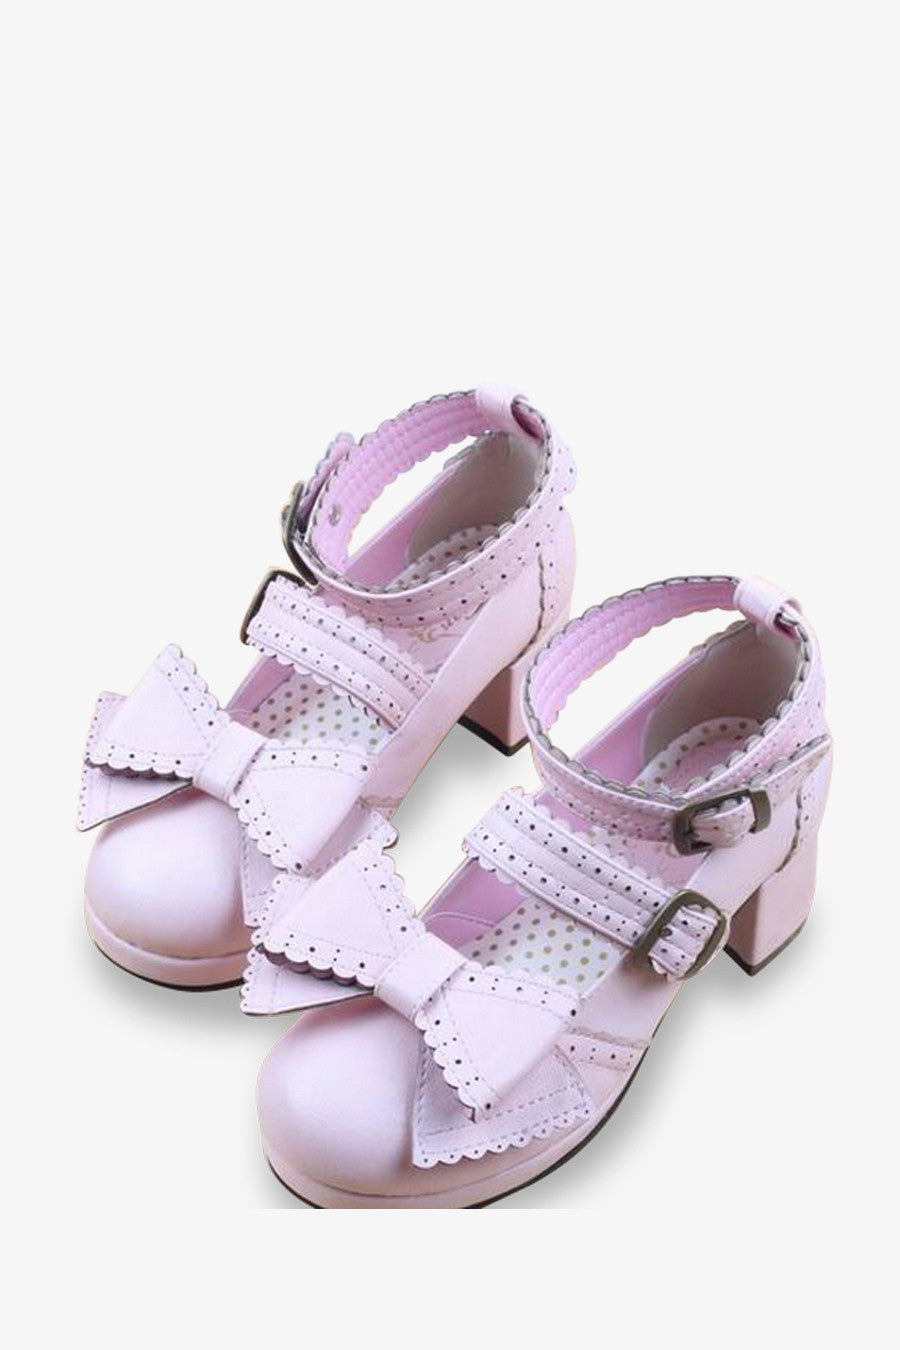 b310d6f0f490 Lolita Platform Shoes In Pink. Tap to expand